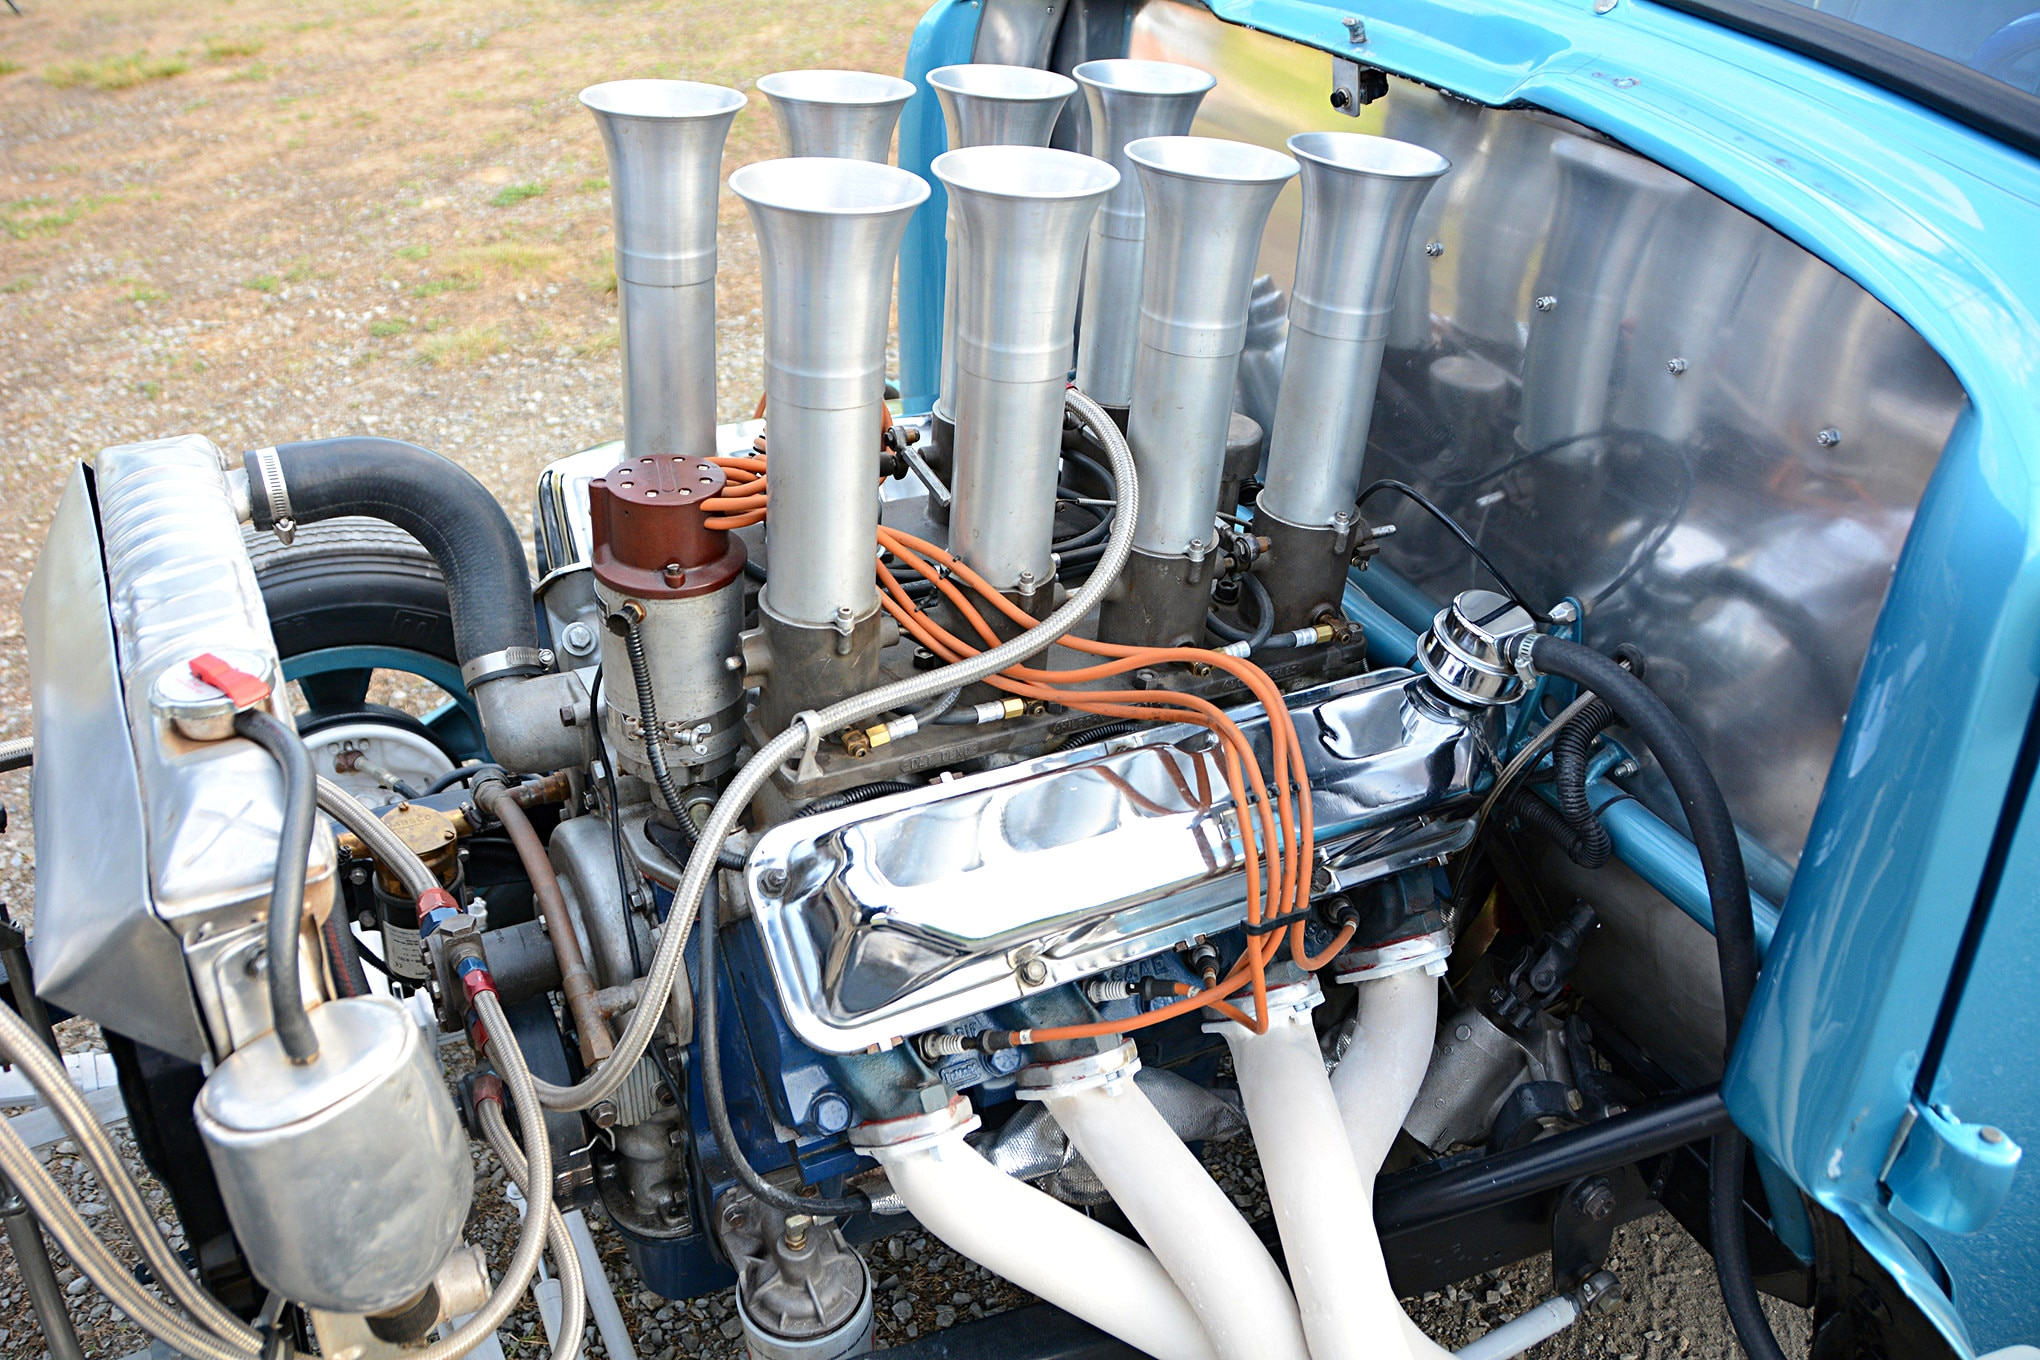 Even though Gene hadn't drag raced in decades, he still had a sizable stash of speed parts in his garage. The new Ford FE combination is a little different than his original 468ci stroker, but it makes plenty of steam and uses the same Hilborn injection that was on the car in 1965.